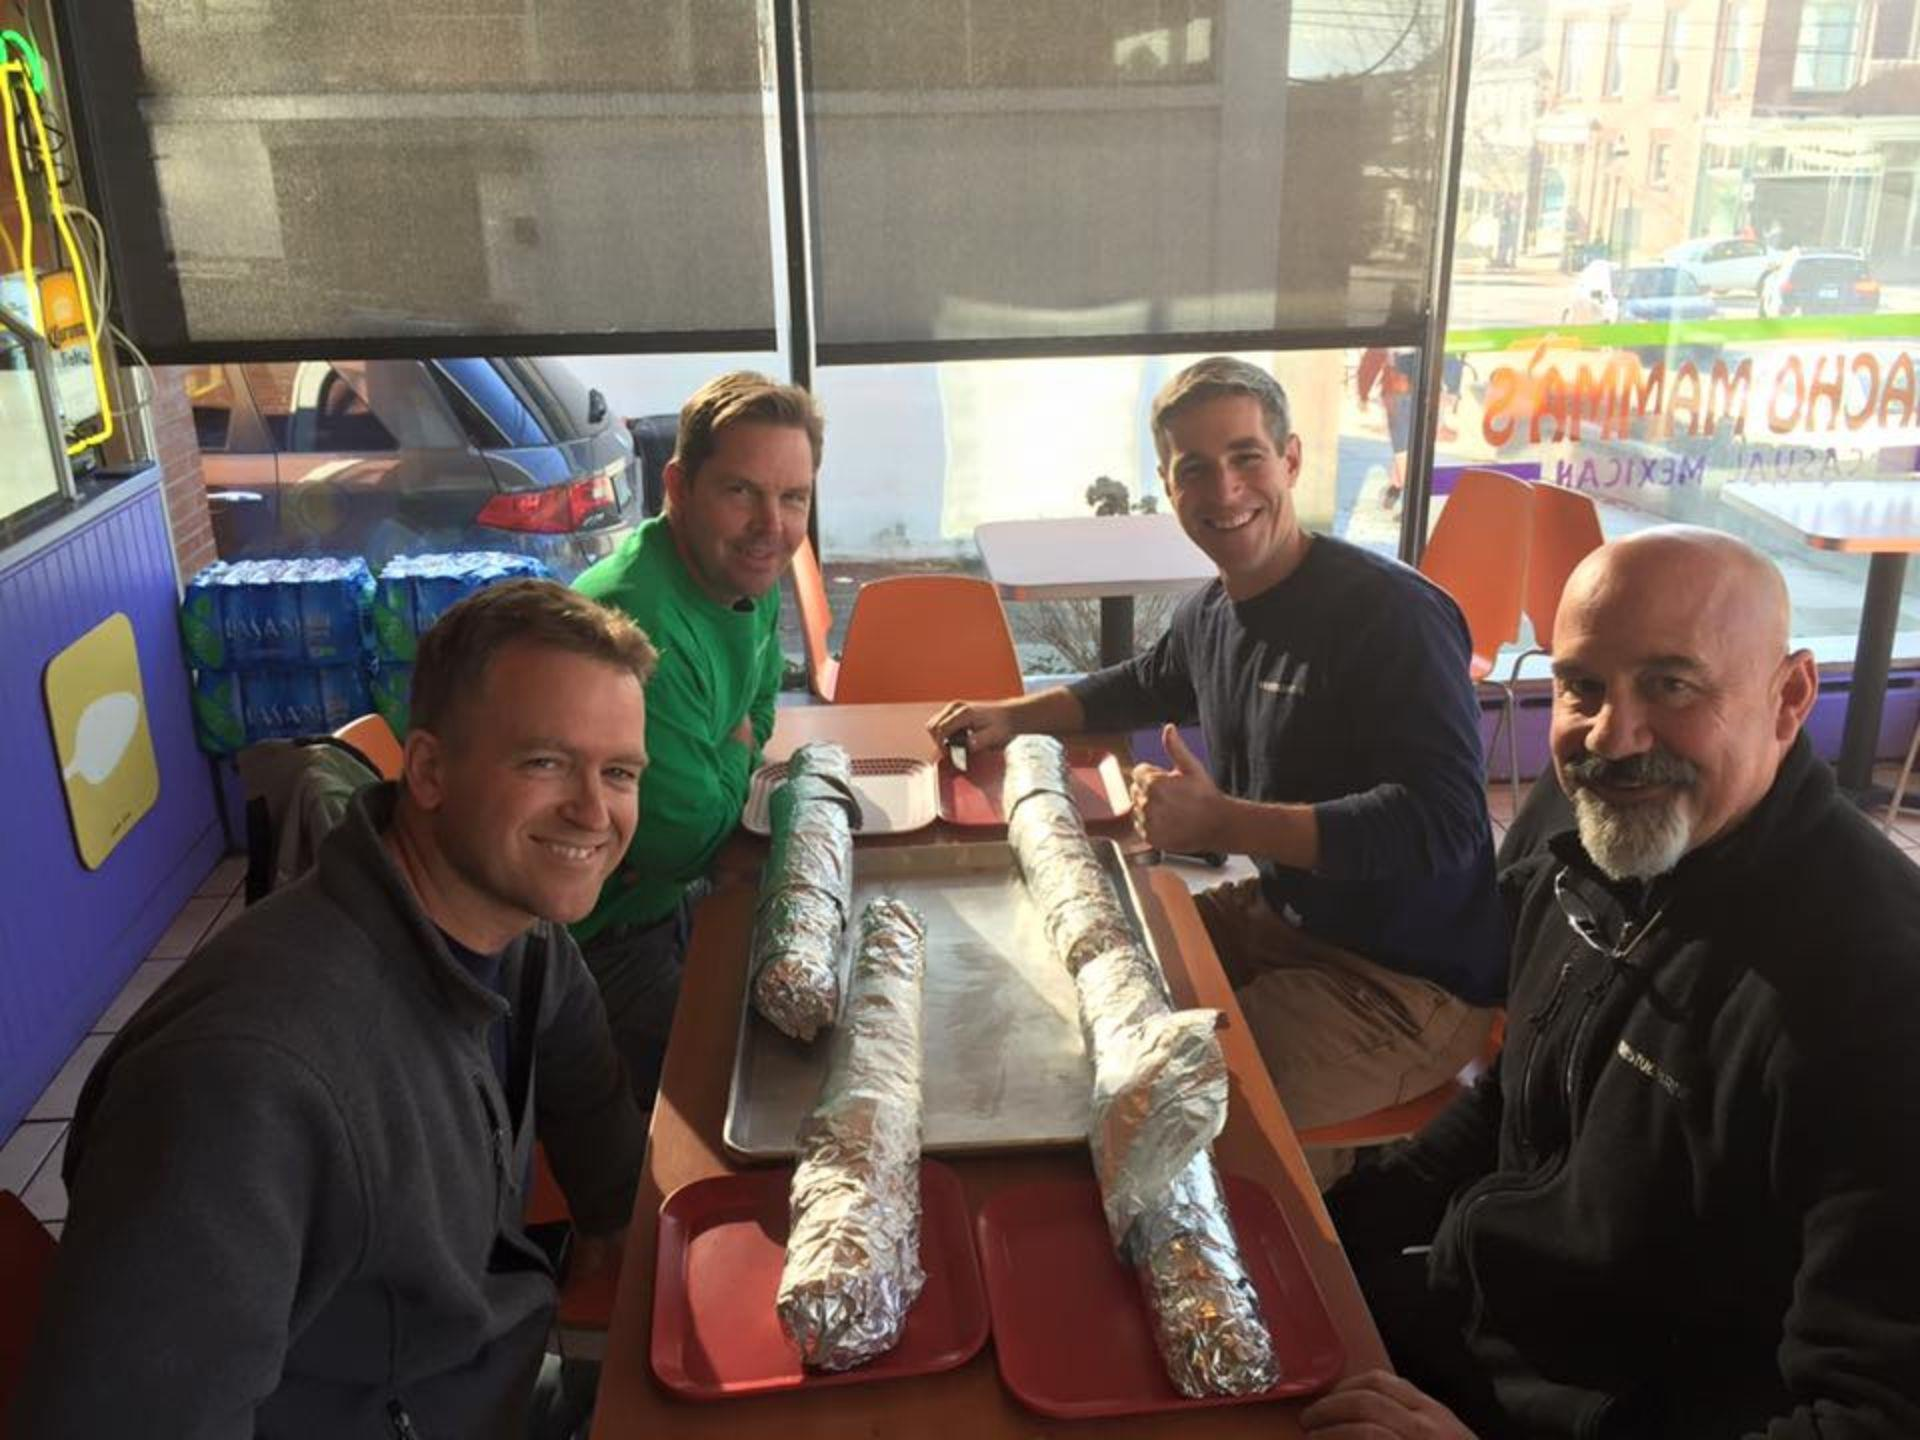 4 customers sitting at a table ready for the burrito challenge